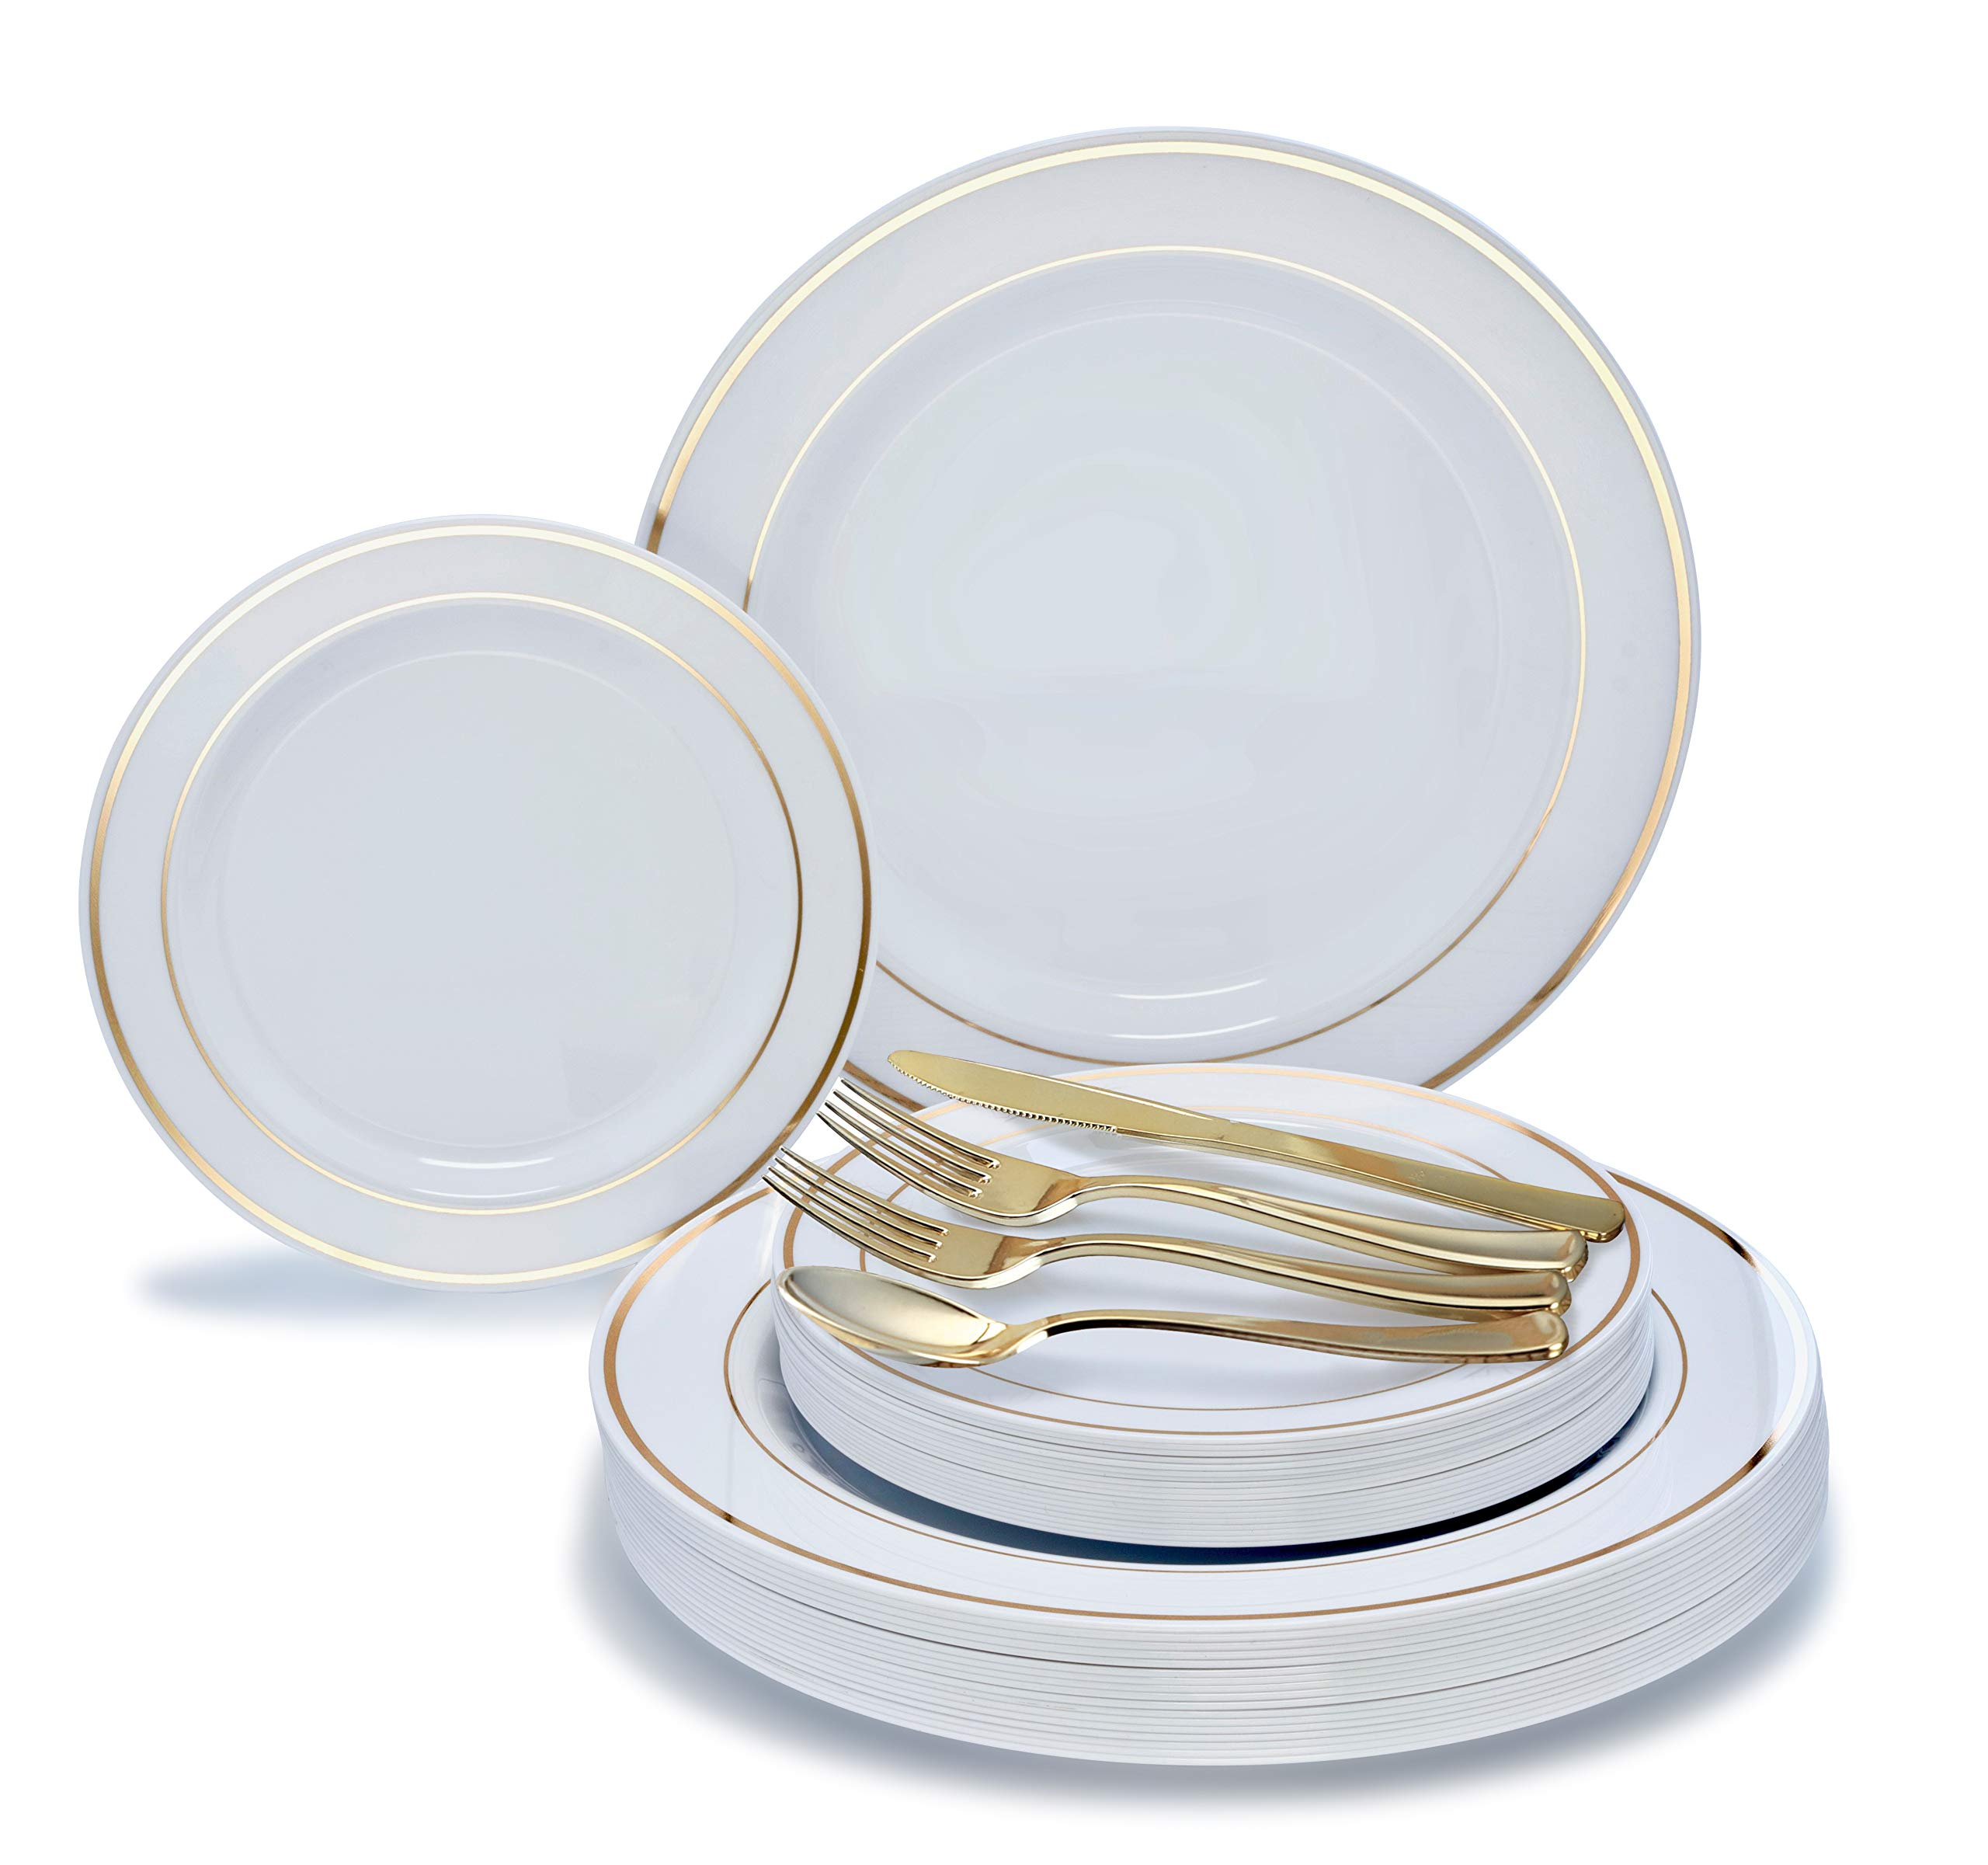 '' OCCASIONS'' 720 PCS / 120 GUEST Wedding Disposable Plastic Plate and Silverware Combo Set, (White/Gold Rim plates, Gold silverware) by OCCASIONS FINEST PLASTIC TABLEWARE (Image #3)